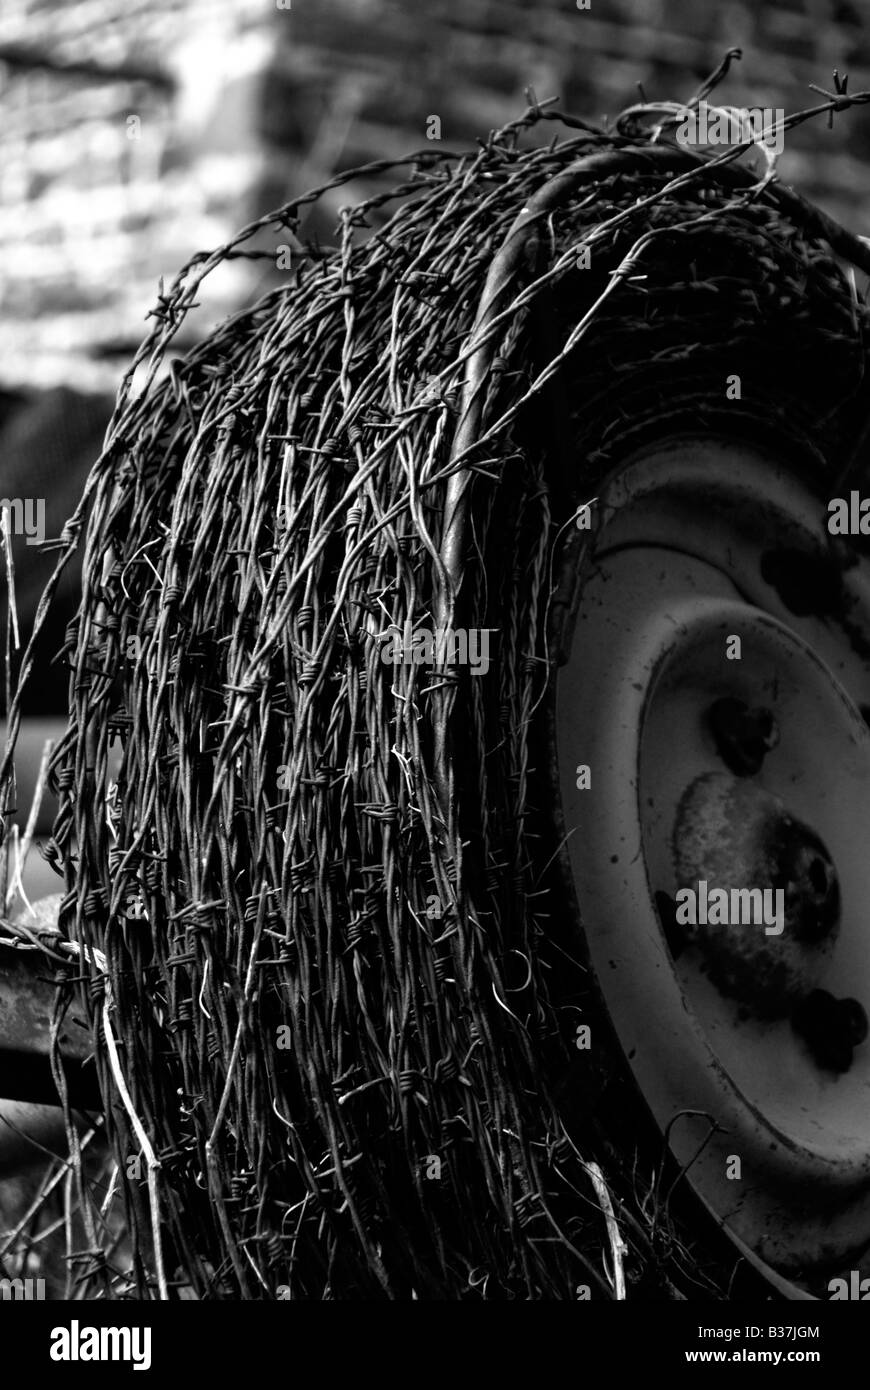 Barbed Wire Fence Rubbish Stock Photos & Barbed Wire Fence Rubbish ...